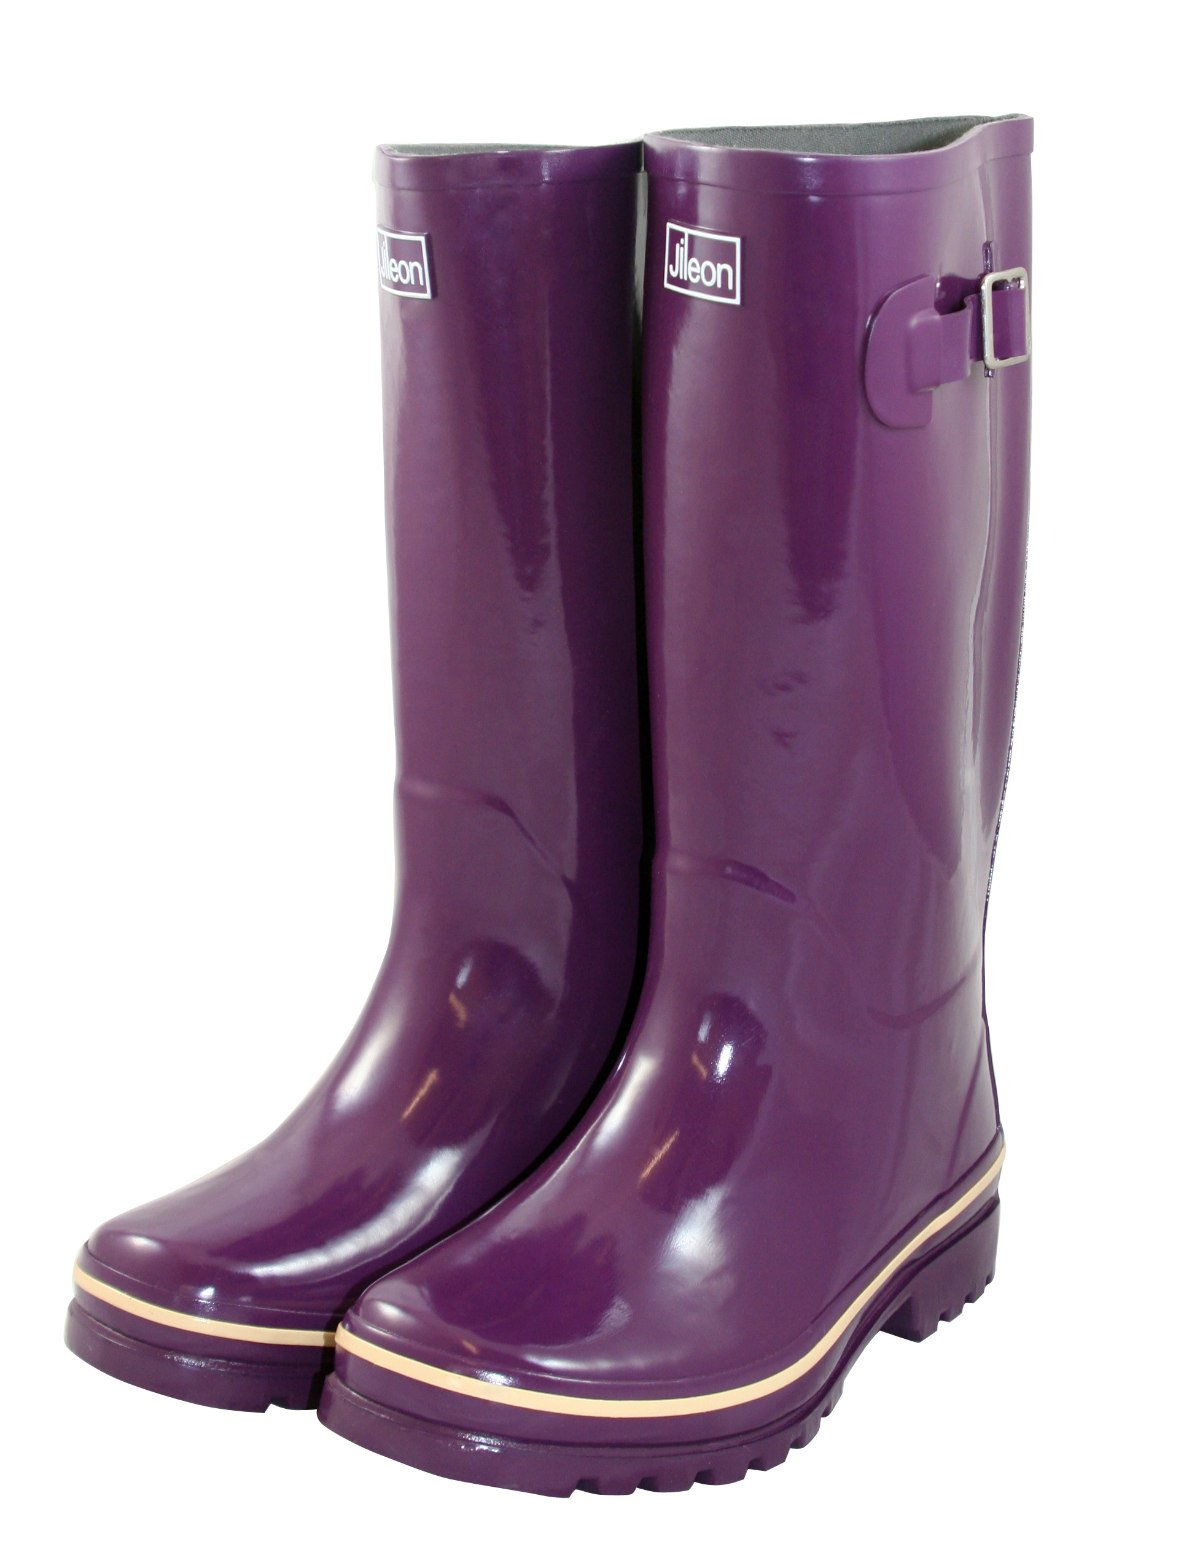 Jileon Wide Calf All Weather Durable Rubber Rain Boots for Women-Soft & Fluffy Lining on The Inside–Fits Calf Sizes up to 18 inches (7 W (Wide) US, Purple Gloss) by Jileon (Image #3)